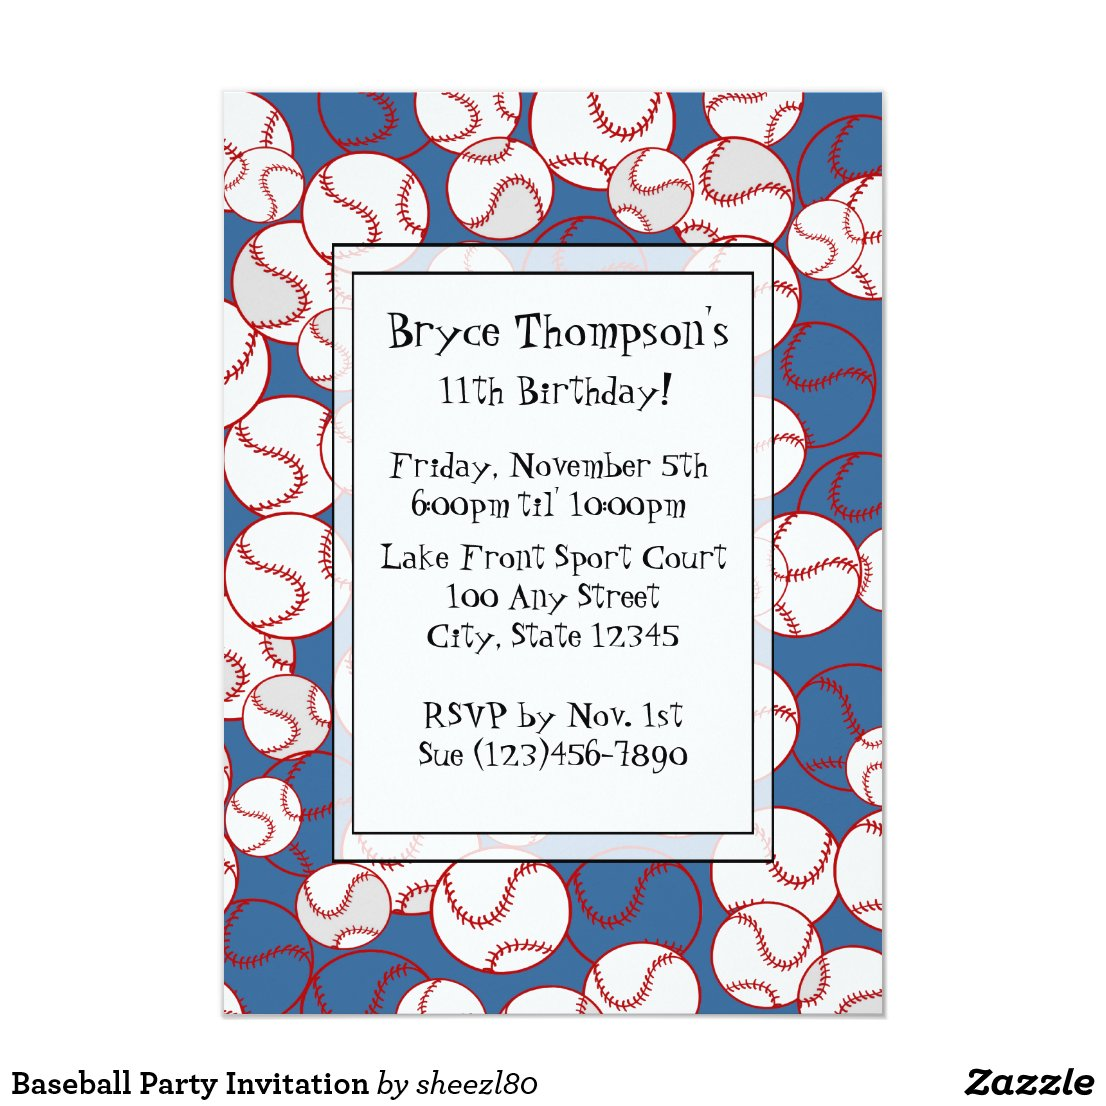 Baseball Party Invitation